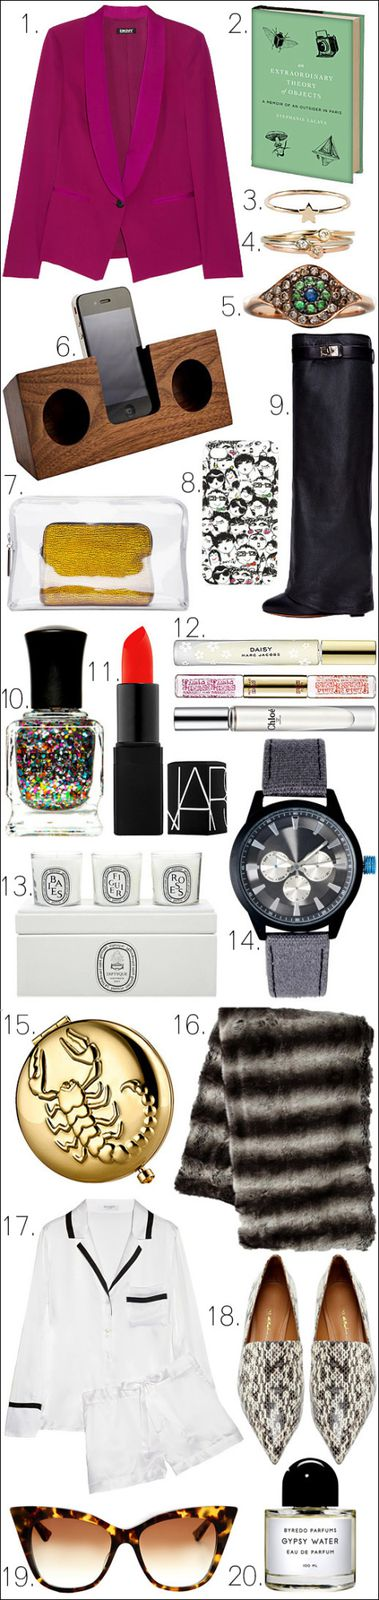 Holiday gift guide latest fashion trends for Best christmas gifts for boyfriend 2012